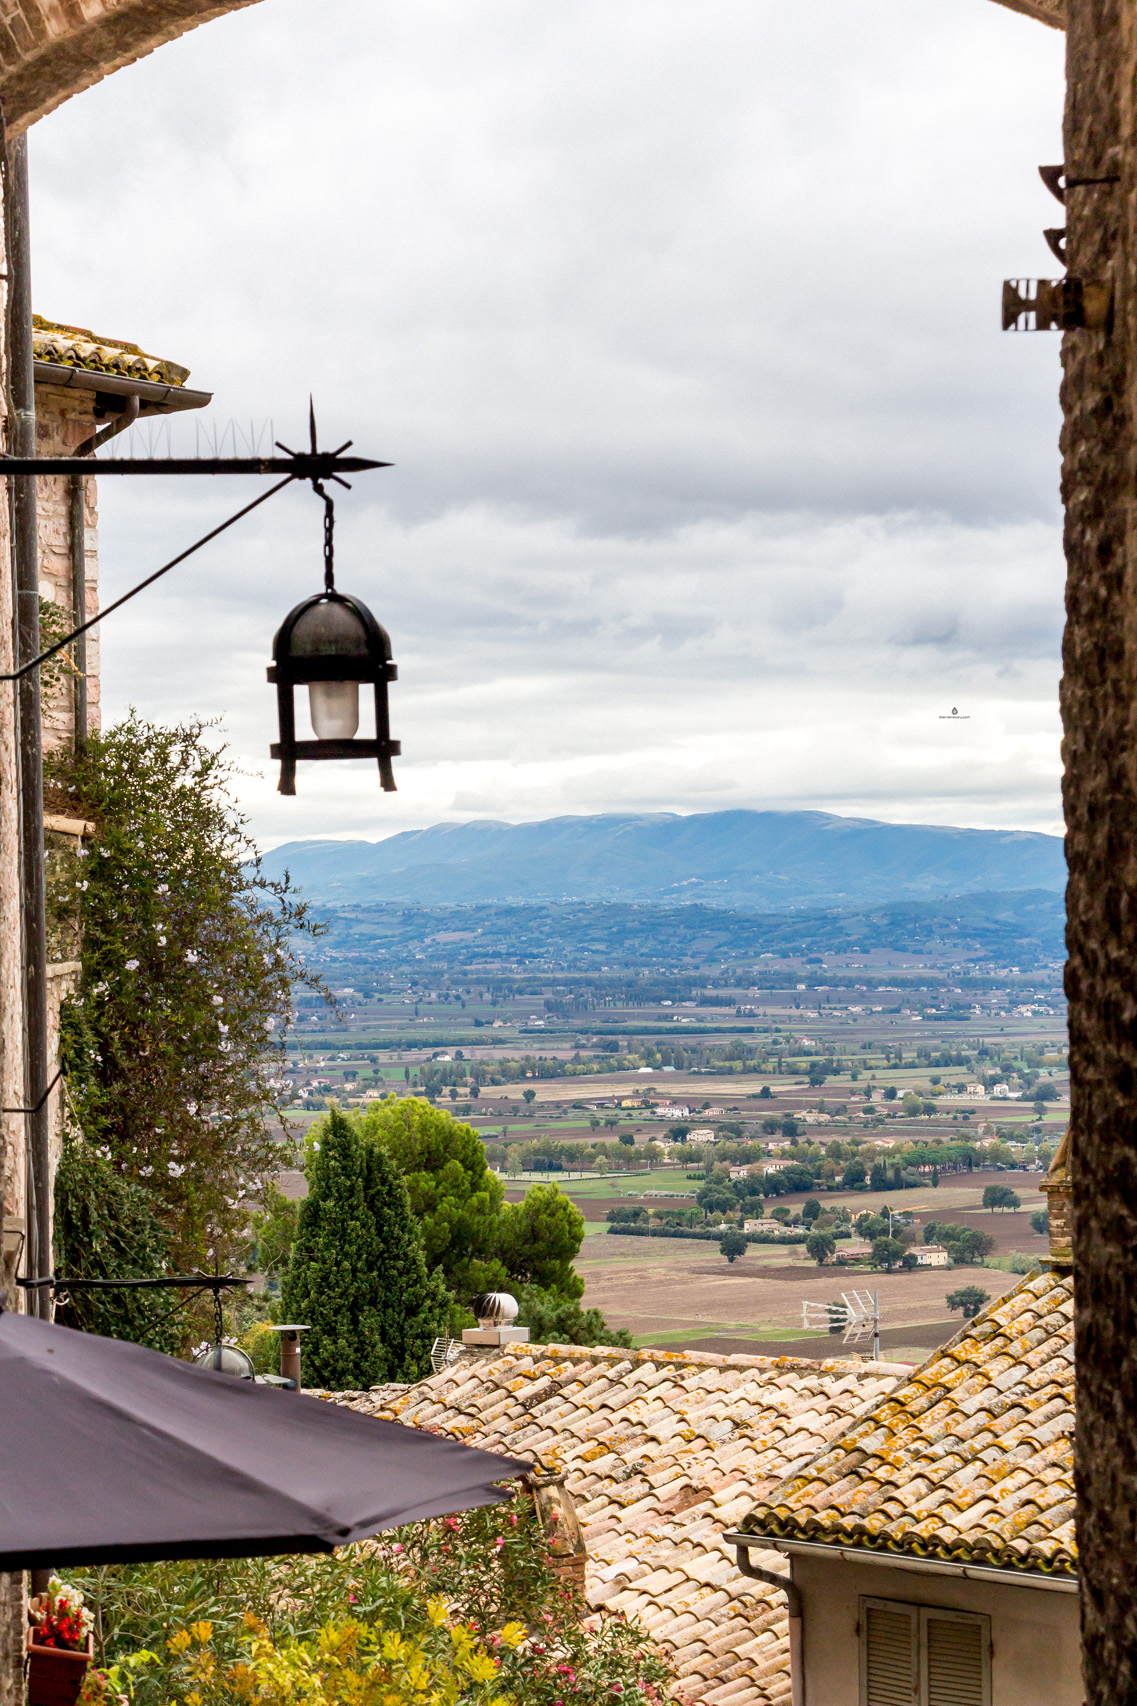 Views from Assisi, Umbria